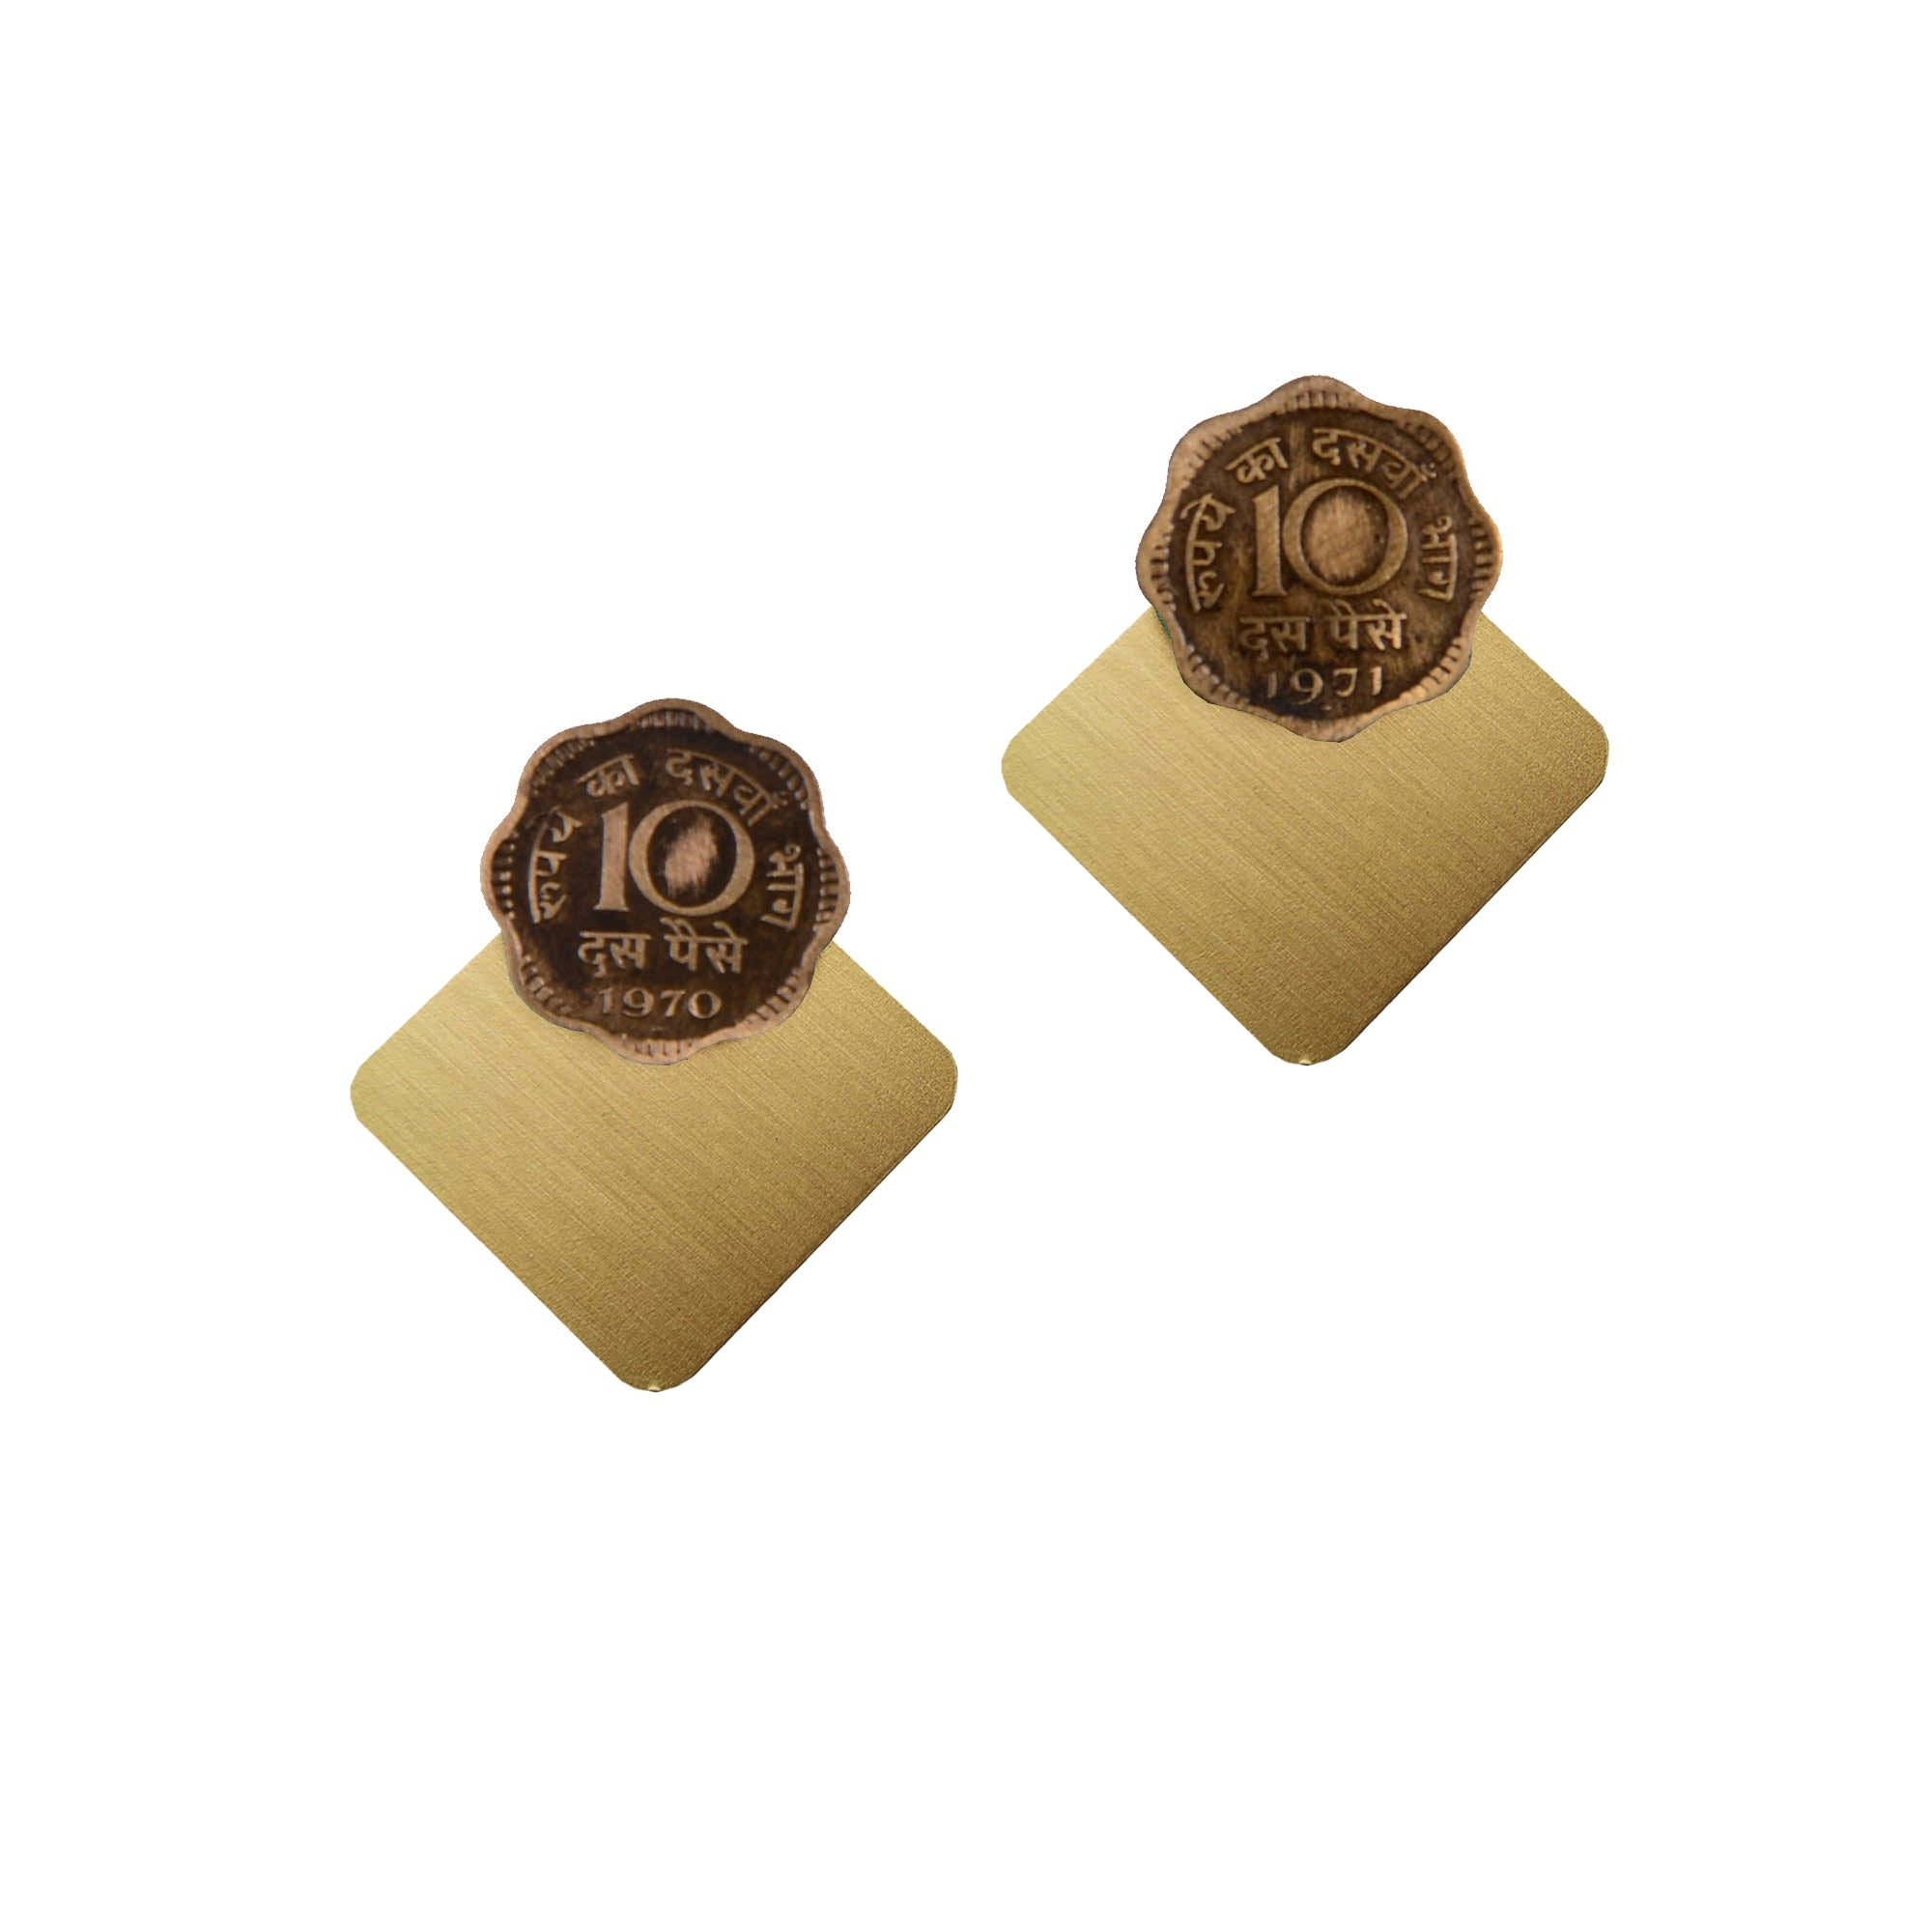 10 paise brass-square earjackets